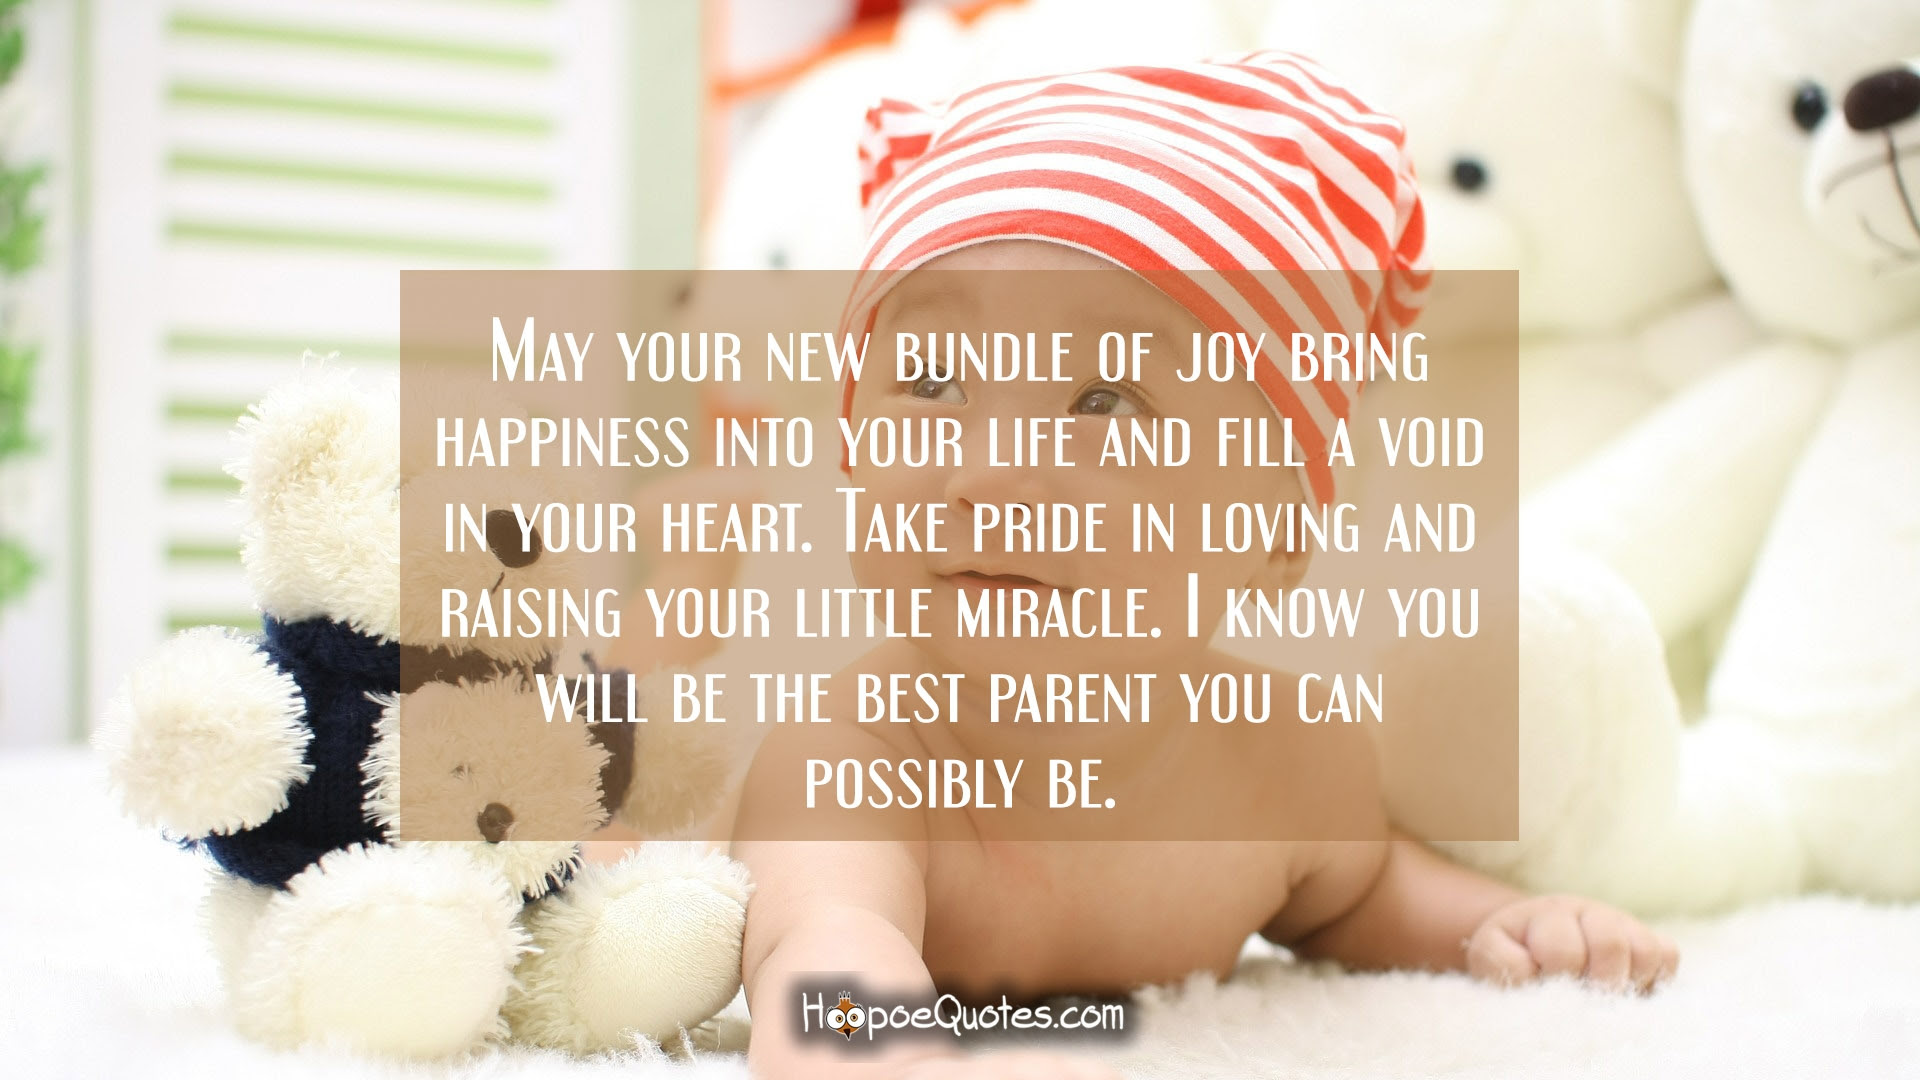 May your new bundle of joy bring happiness into your life and fill a void in